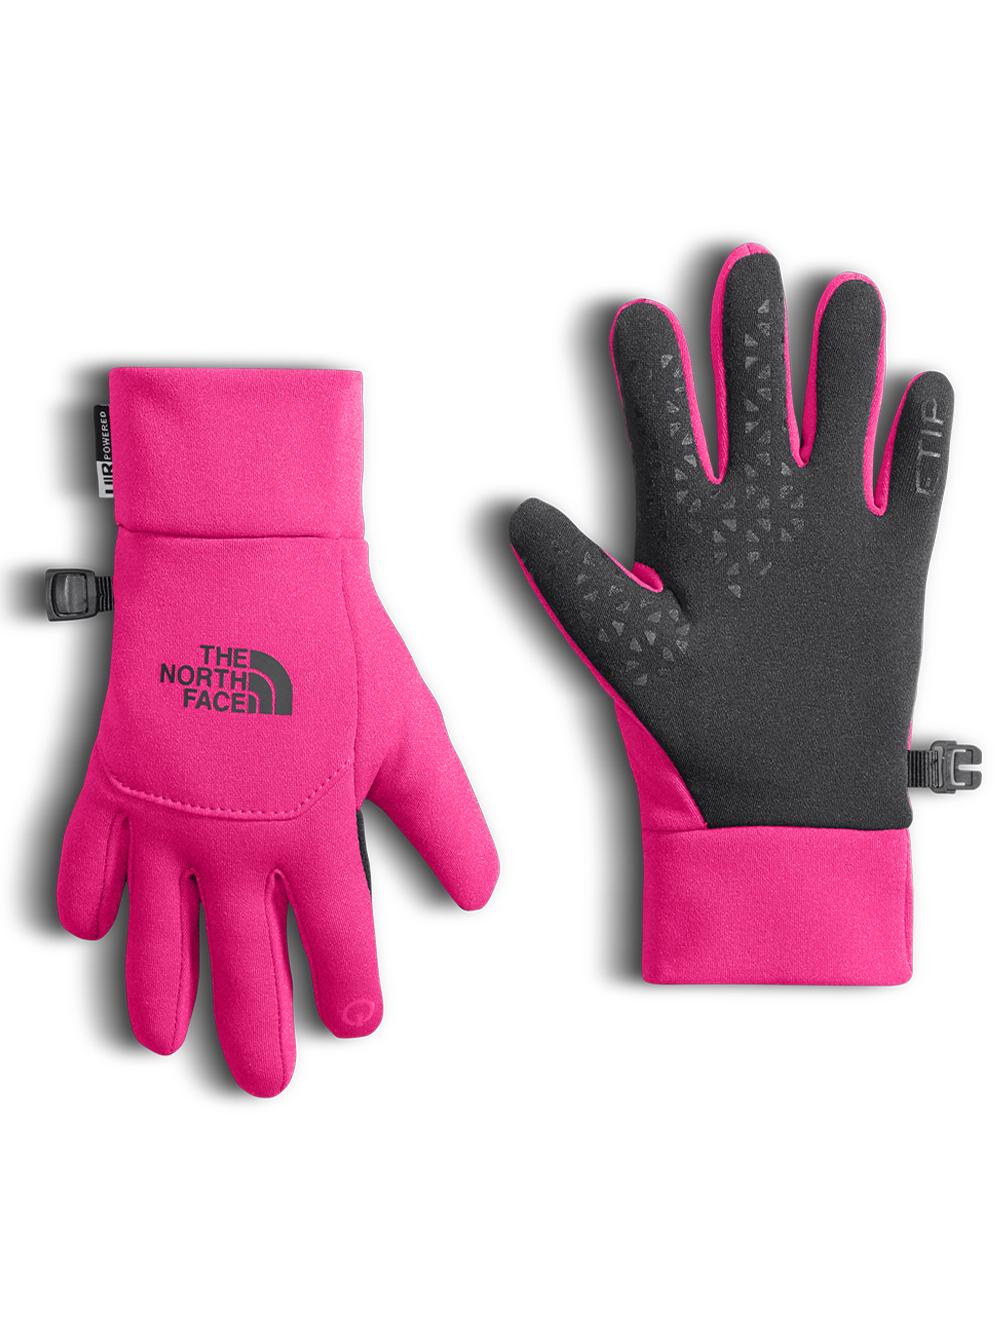 ded92a6a4 Girls' Youth Etip Glove by The North Face in Petticoat pink